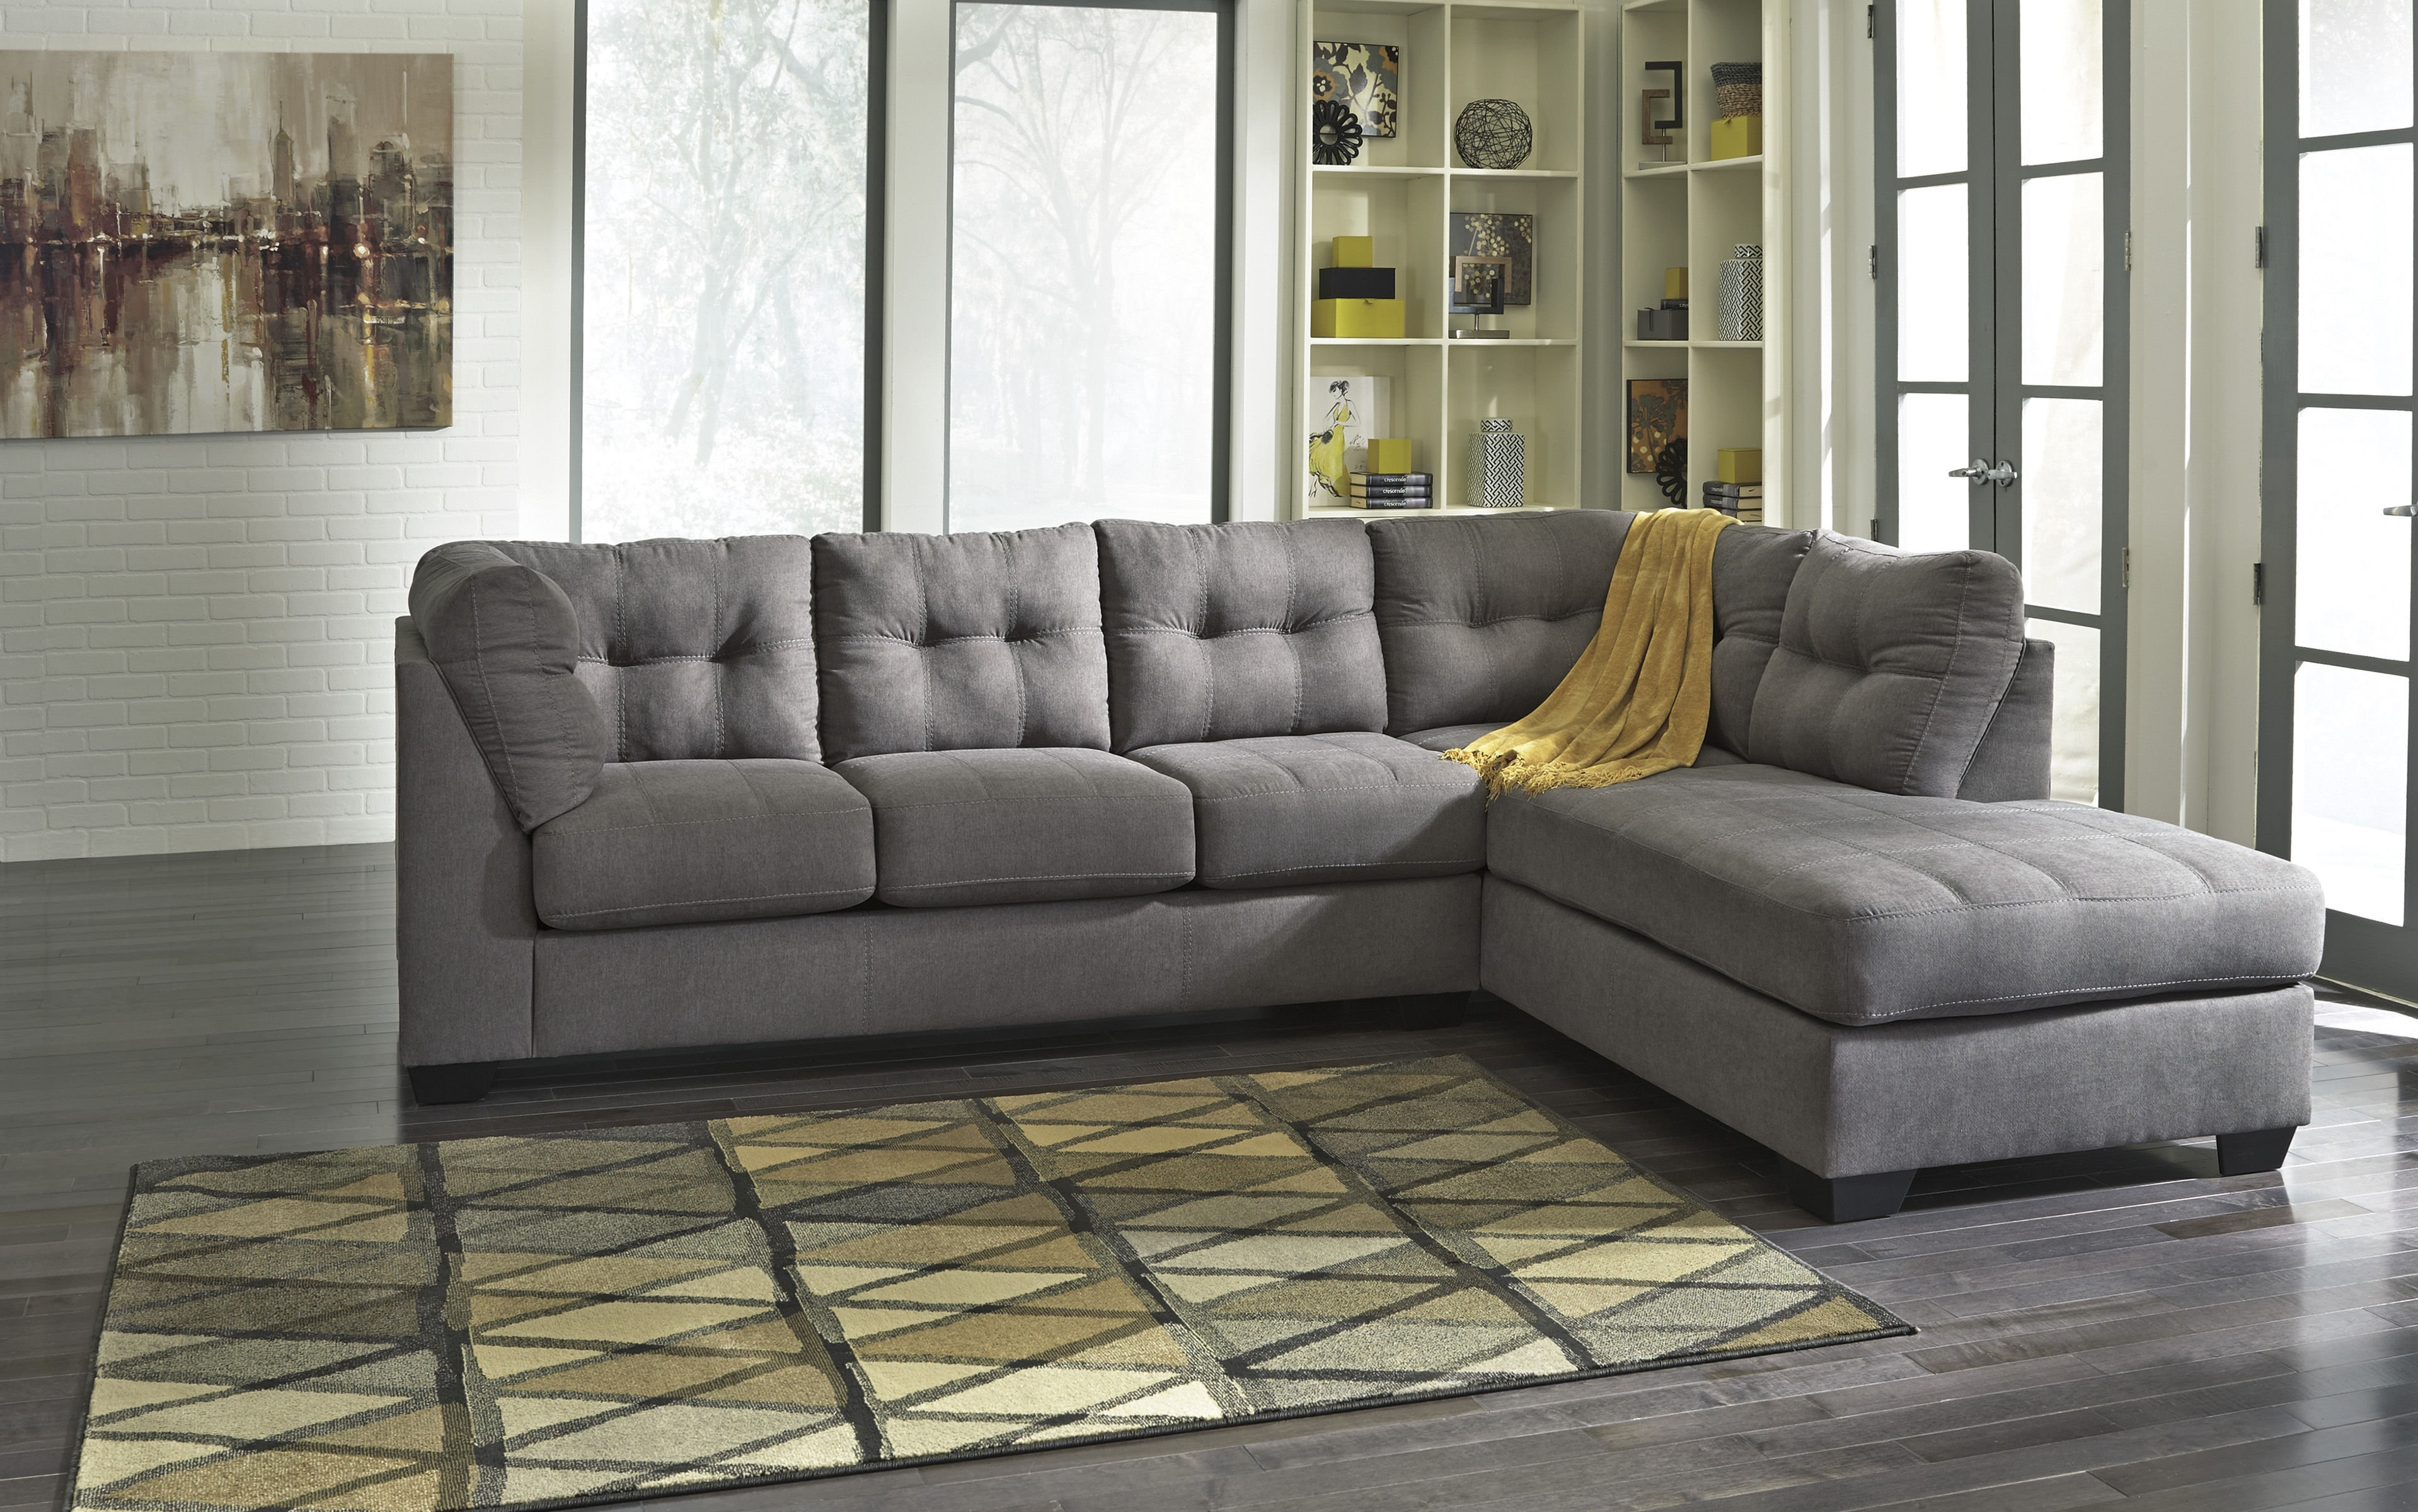 Ashley Furniture Maier Charcoal Raf Chaise Sectional | The Classy Home Throughout Collins Sofa Sectionals With Reversible Chaise (View 2 of 30)